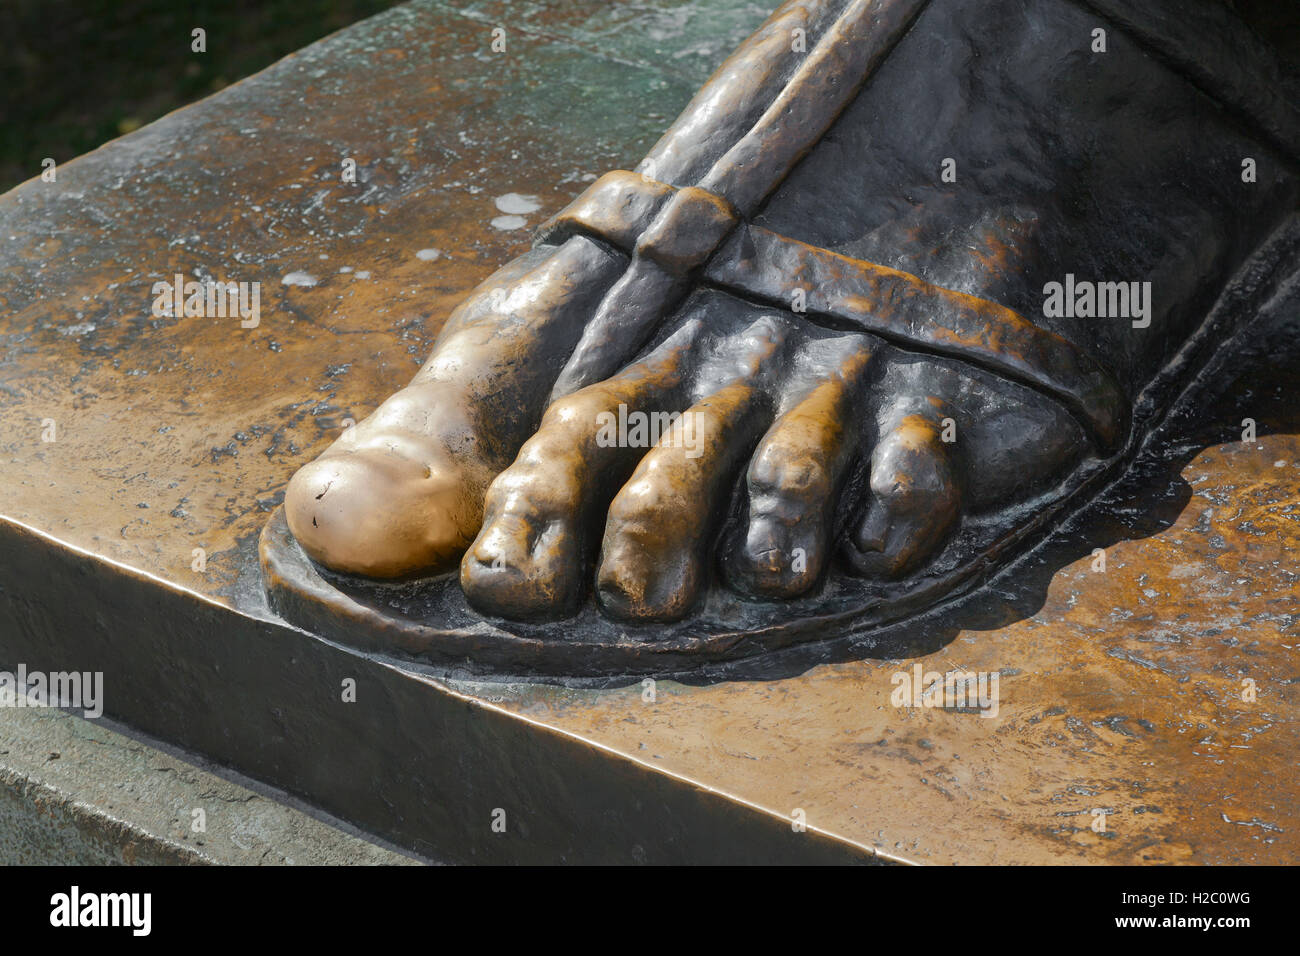 Statue of bishop Gregory of Nin, in the Giardin Park, rubbing the big toe is said to give good luck! - Stock Image